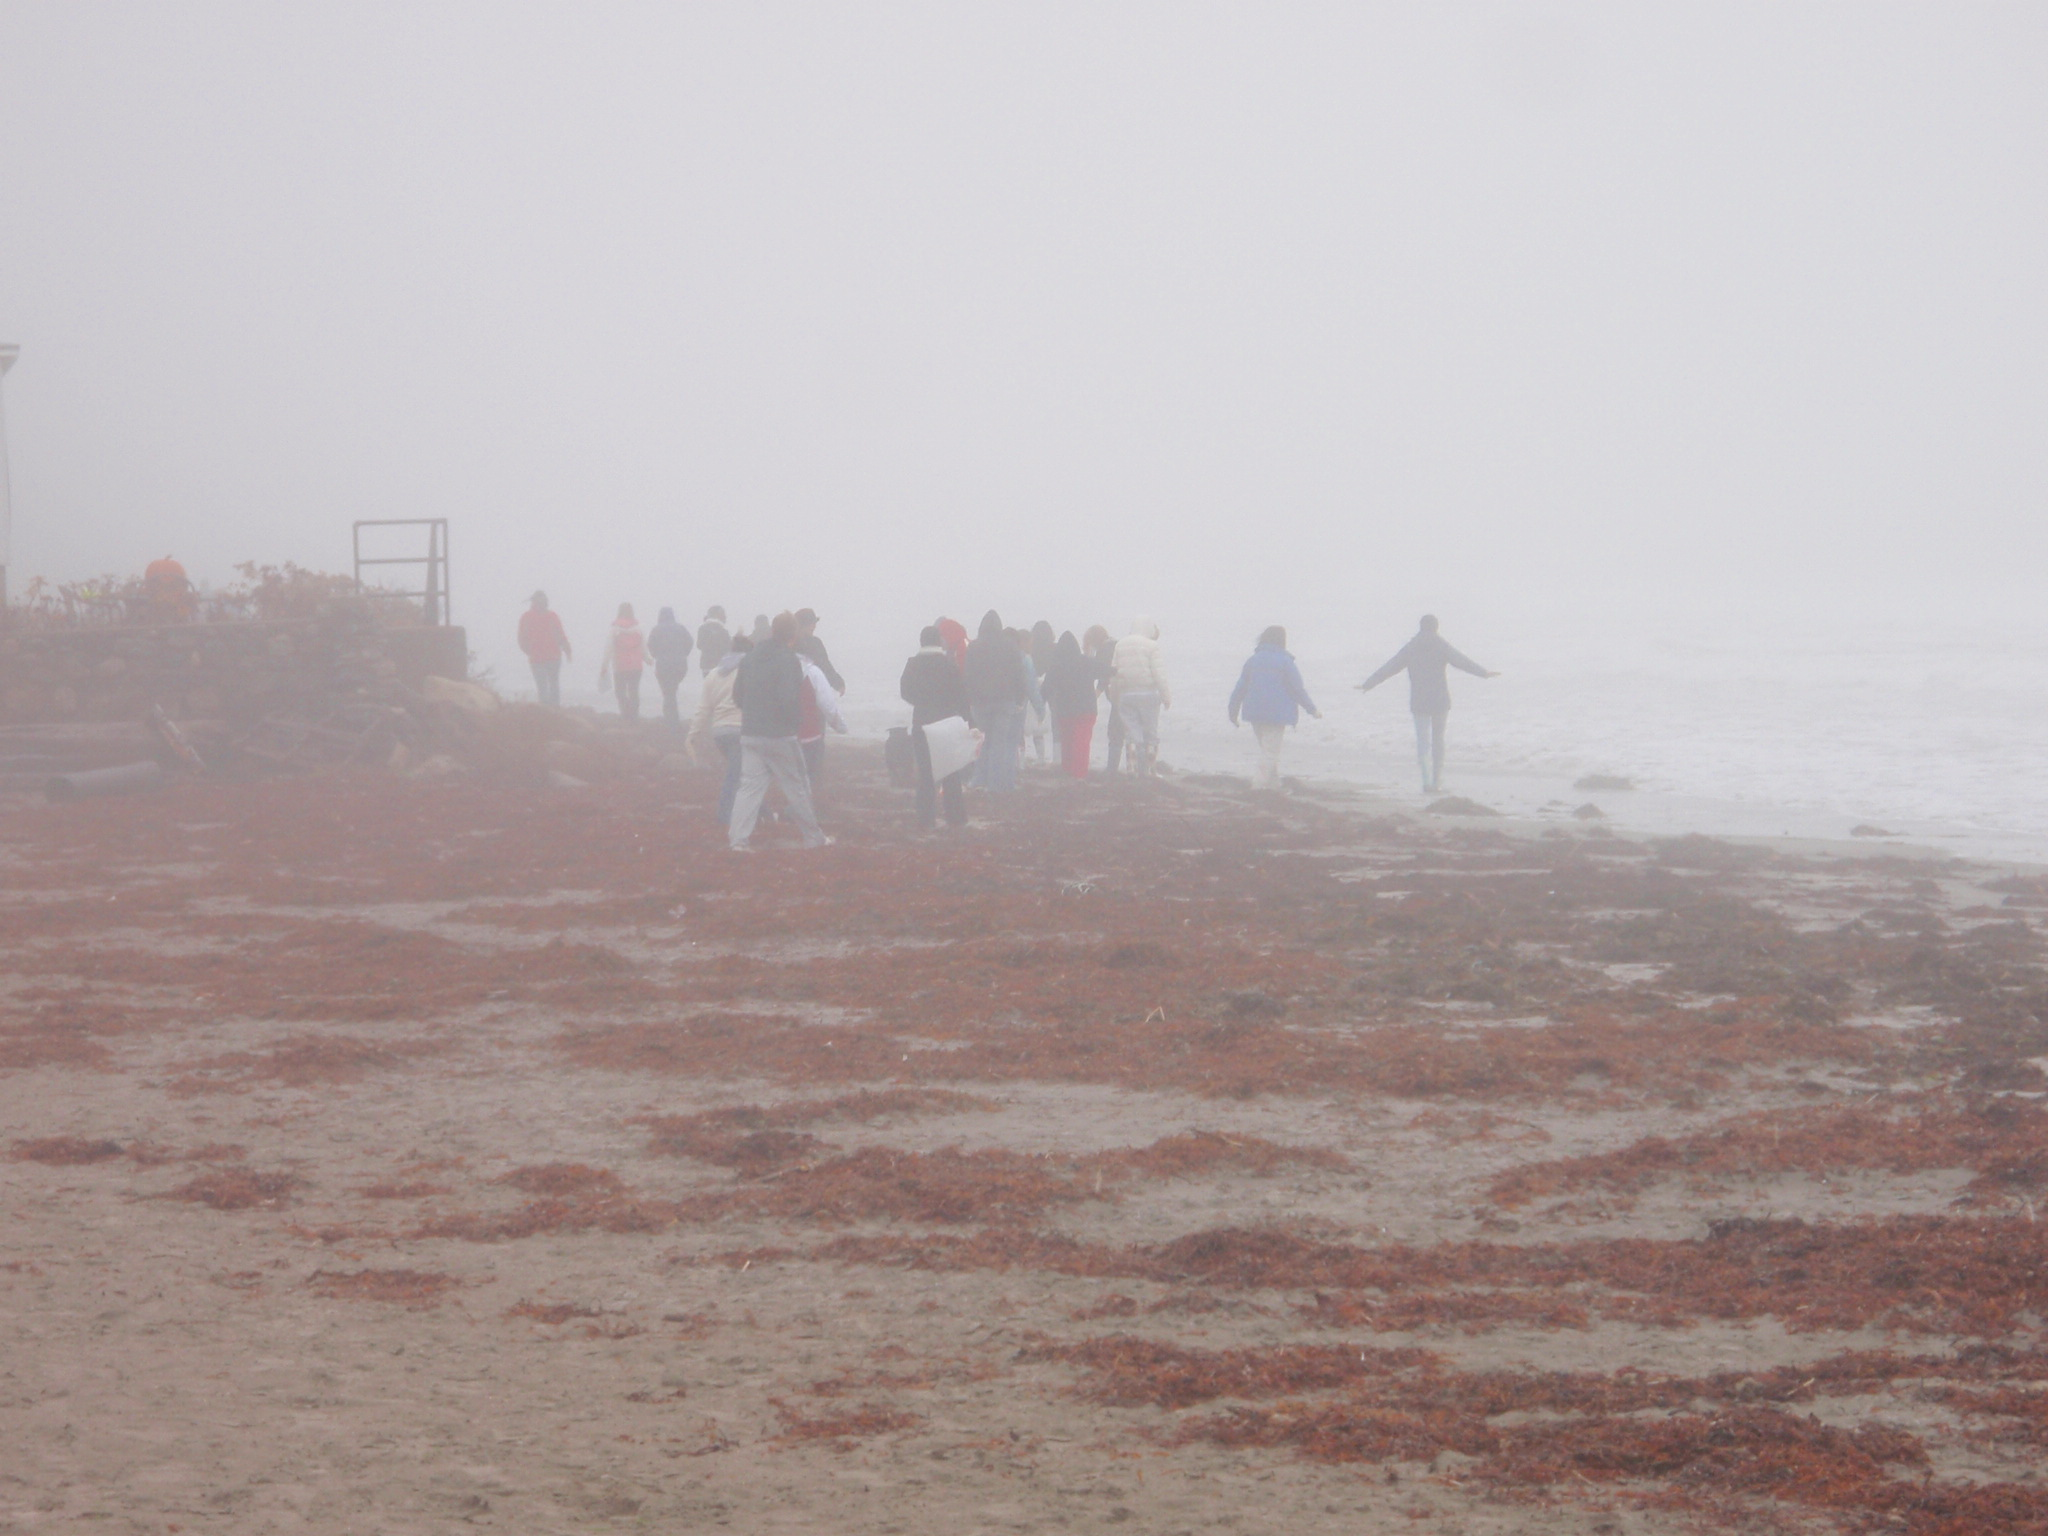 group of volunteers cleaning up the beach in the fog